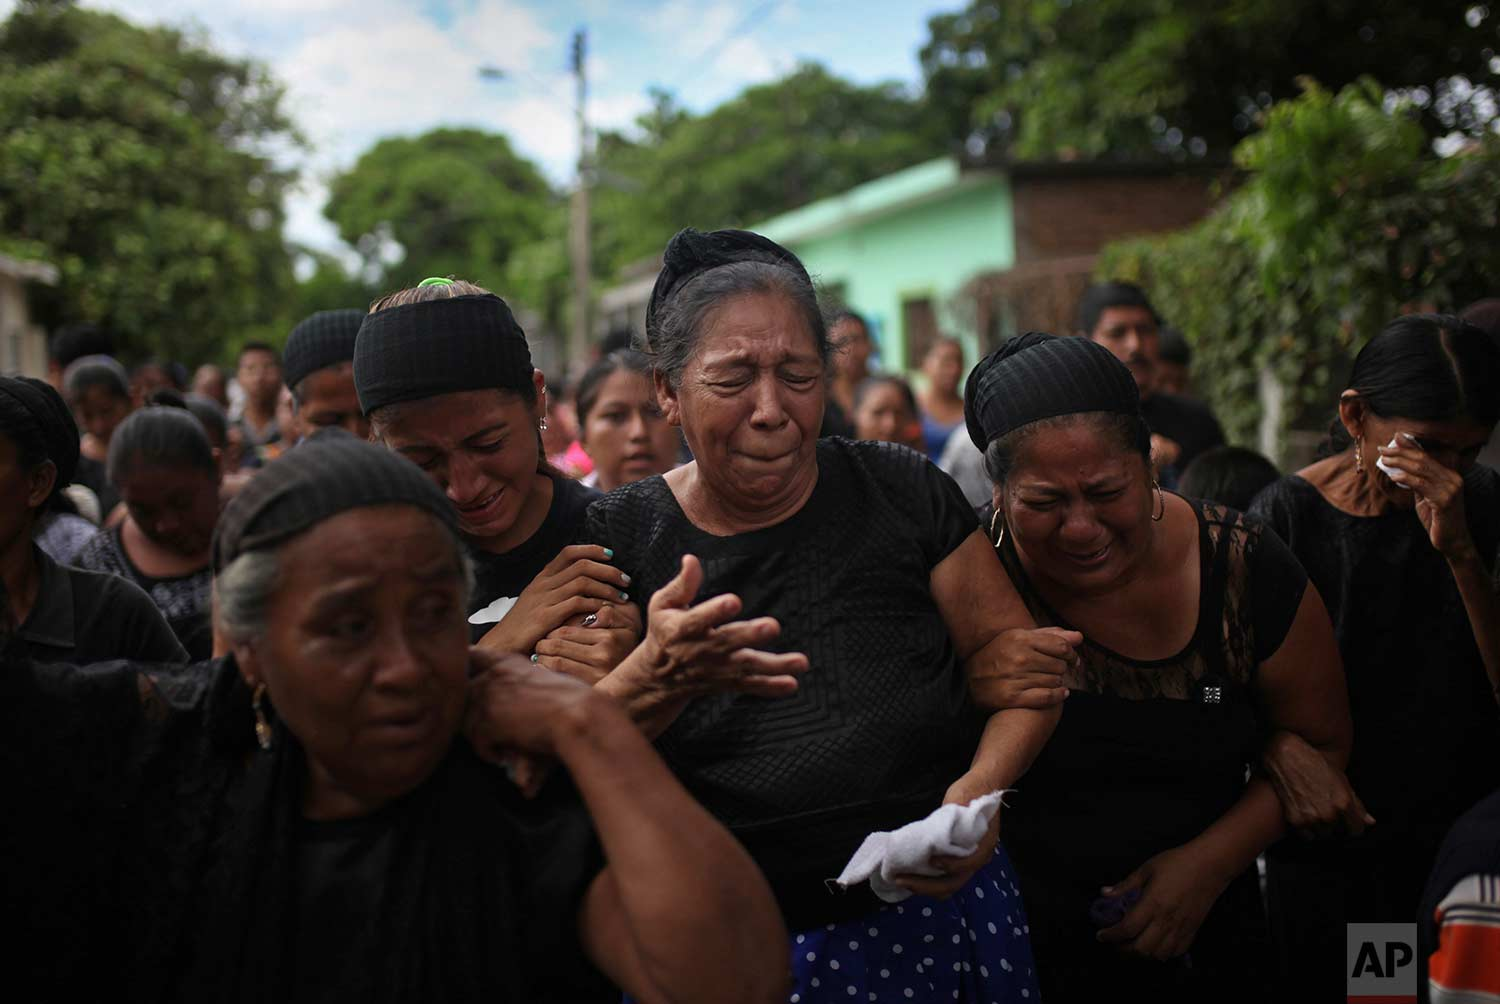 In this Sunday, Sept. 10, 2017 photo, relatives of 38-year-old earthquake victim, police officer Juan Jimenez Regalado, weep during his funeral in Juchitan, Oaxaca state, Mexico. (AP Photo/Felix Marquez)